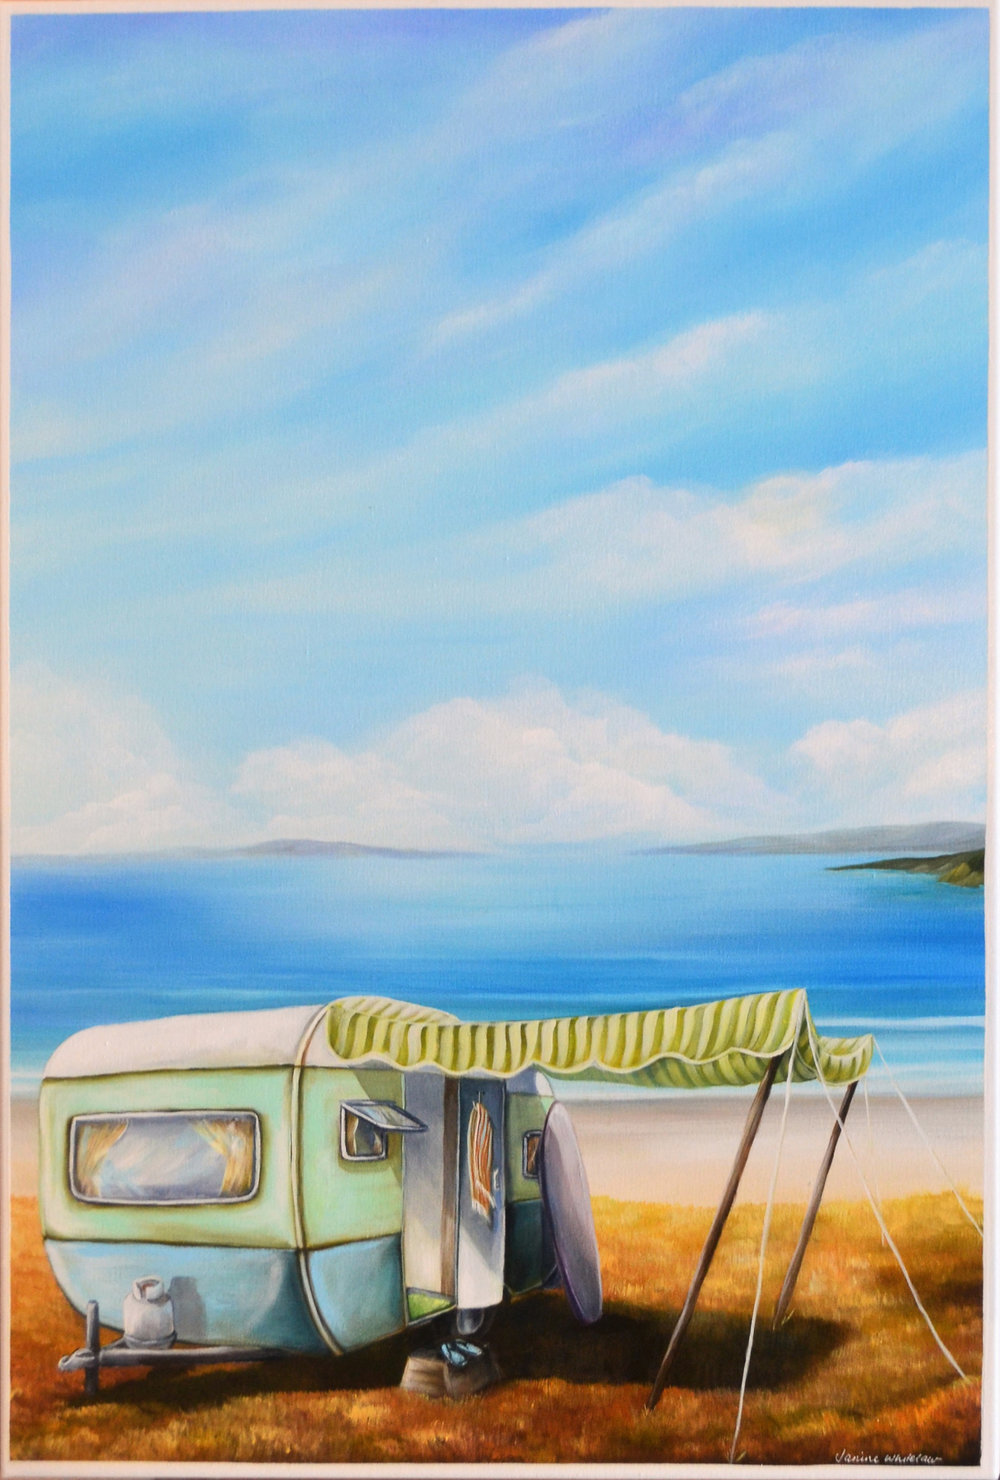 Portrait of a Surfboard, Retro Summer Series  Janine Whitelaw, acrylic on canvas, 645mm x 910mm  $1,600.00